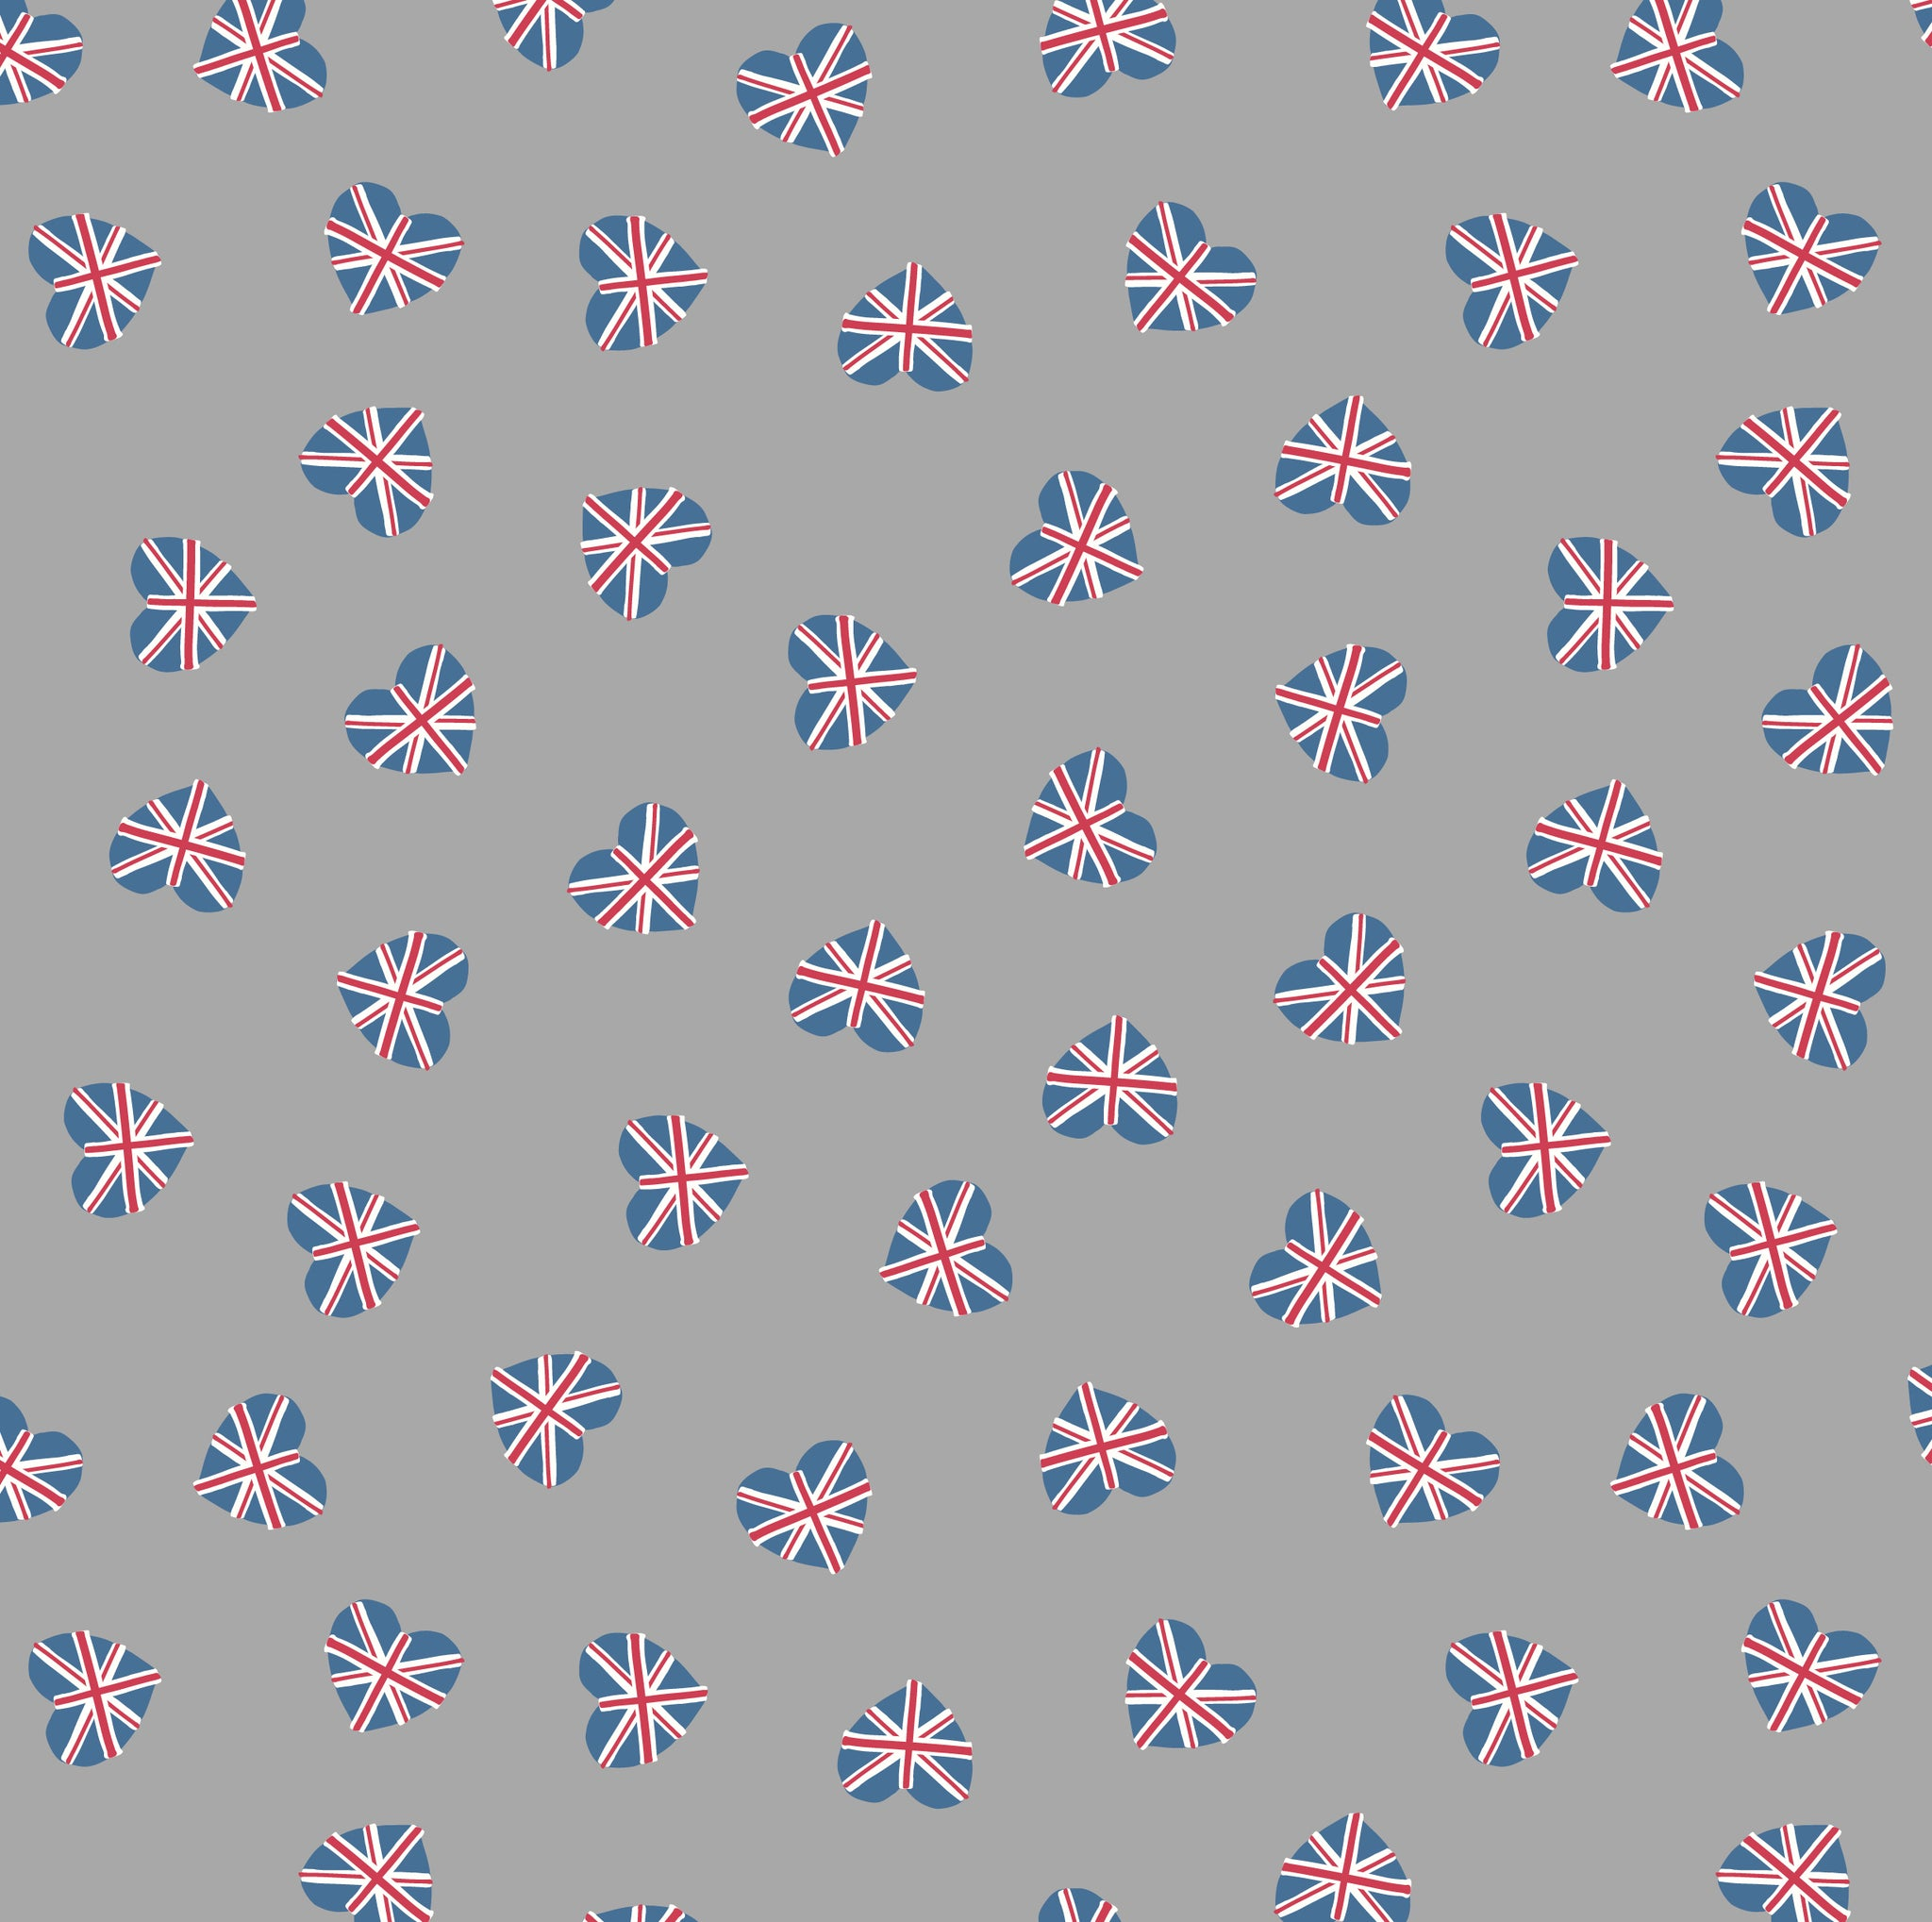 COTTON - Lewis & Irene - Britannia - Union Jack Hearts on Grey  (1/2 yard)